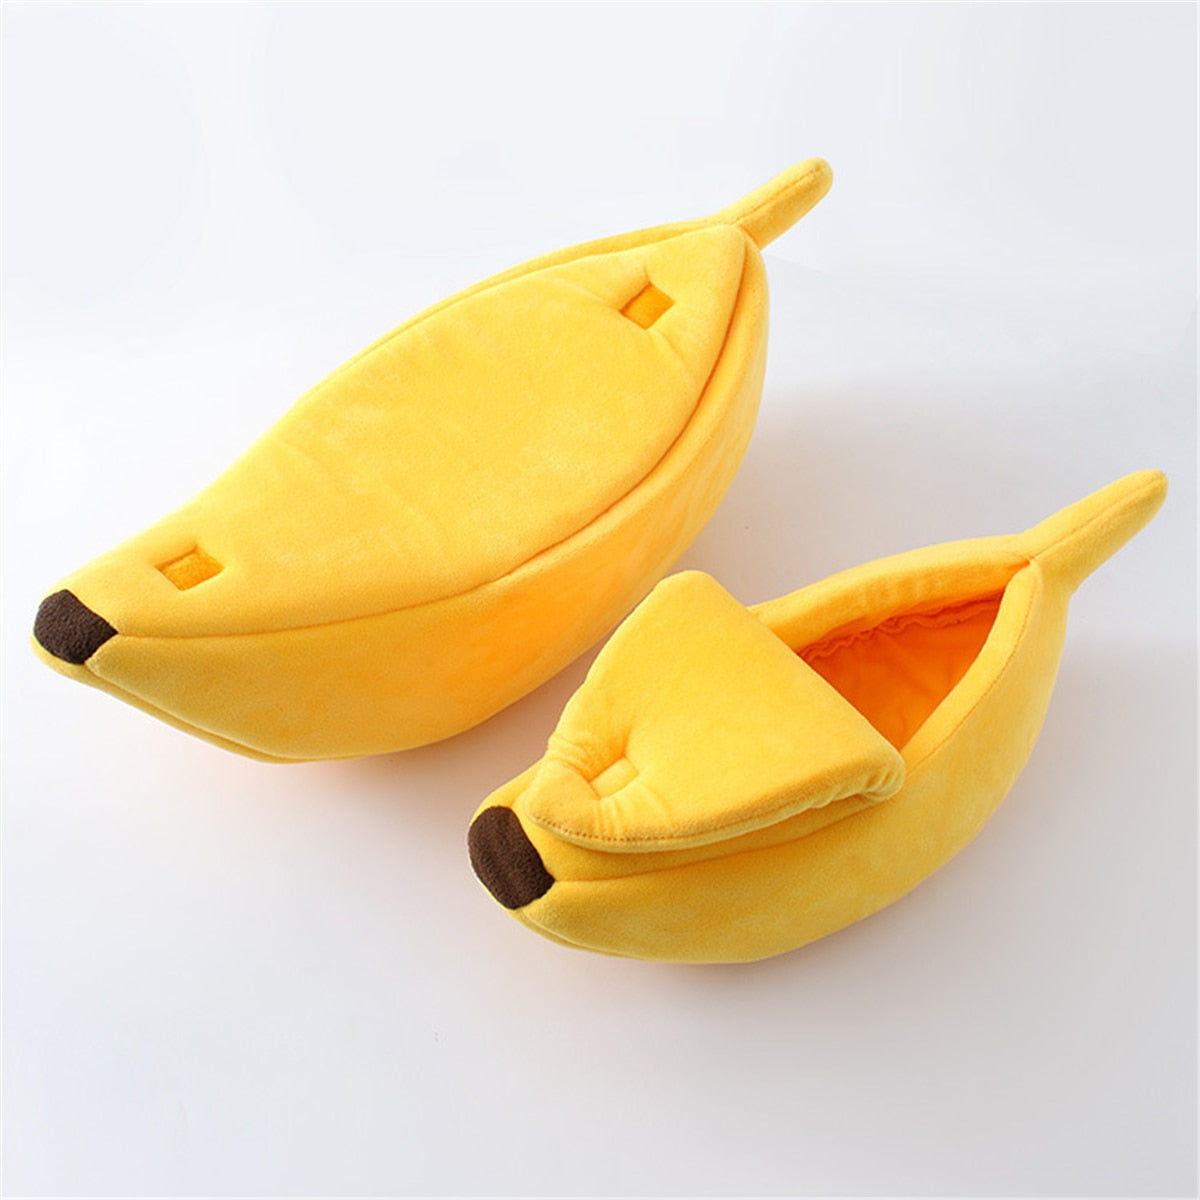 Portable Banana Shape Pet Bed